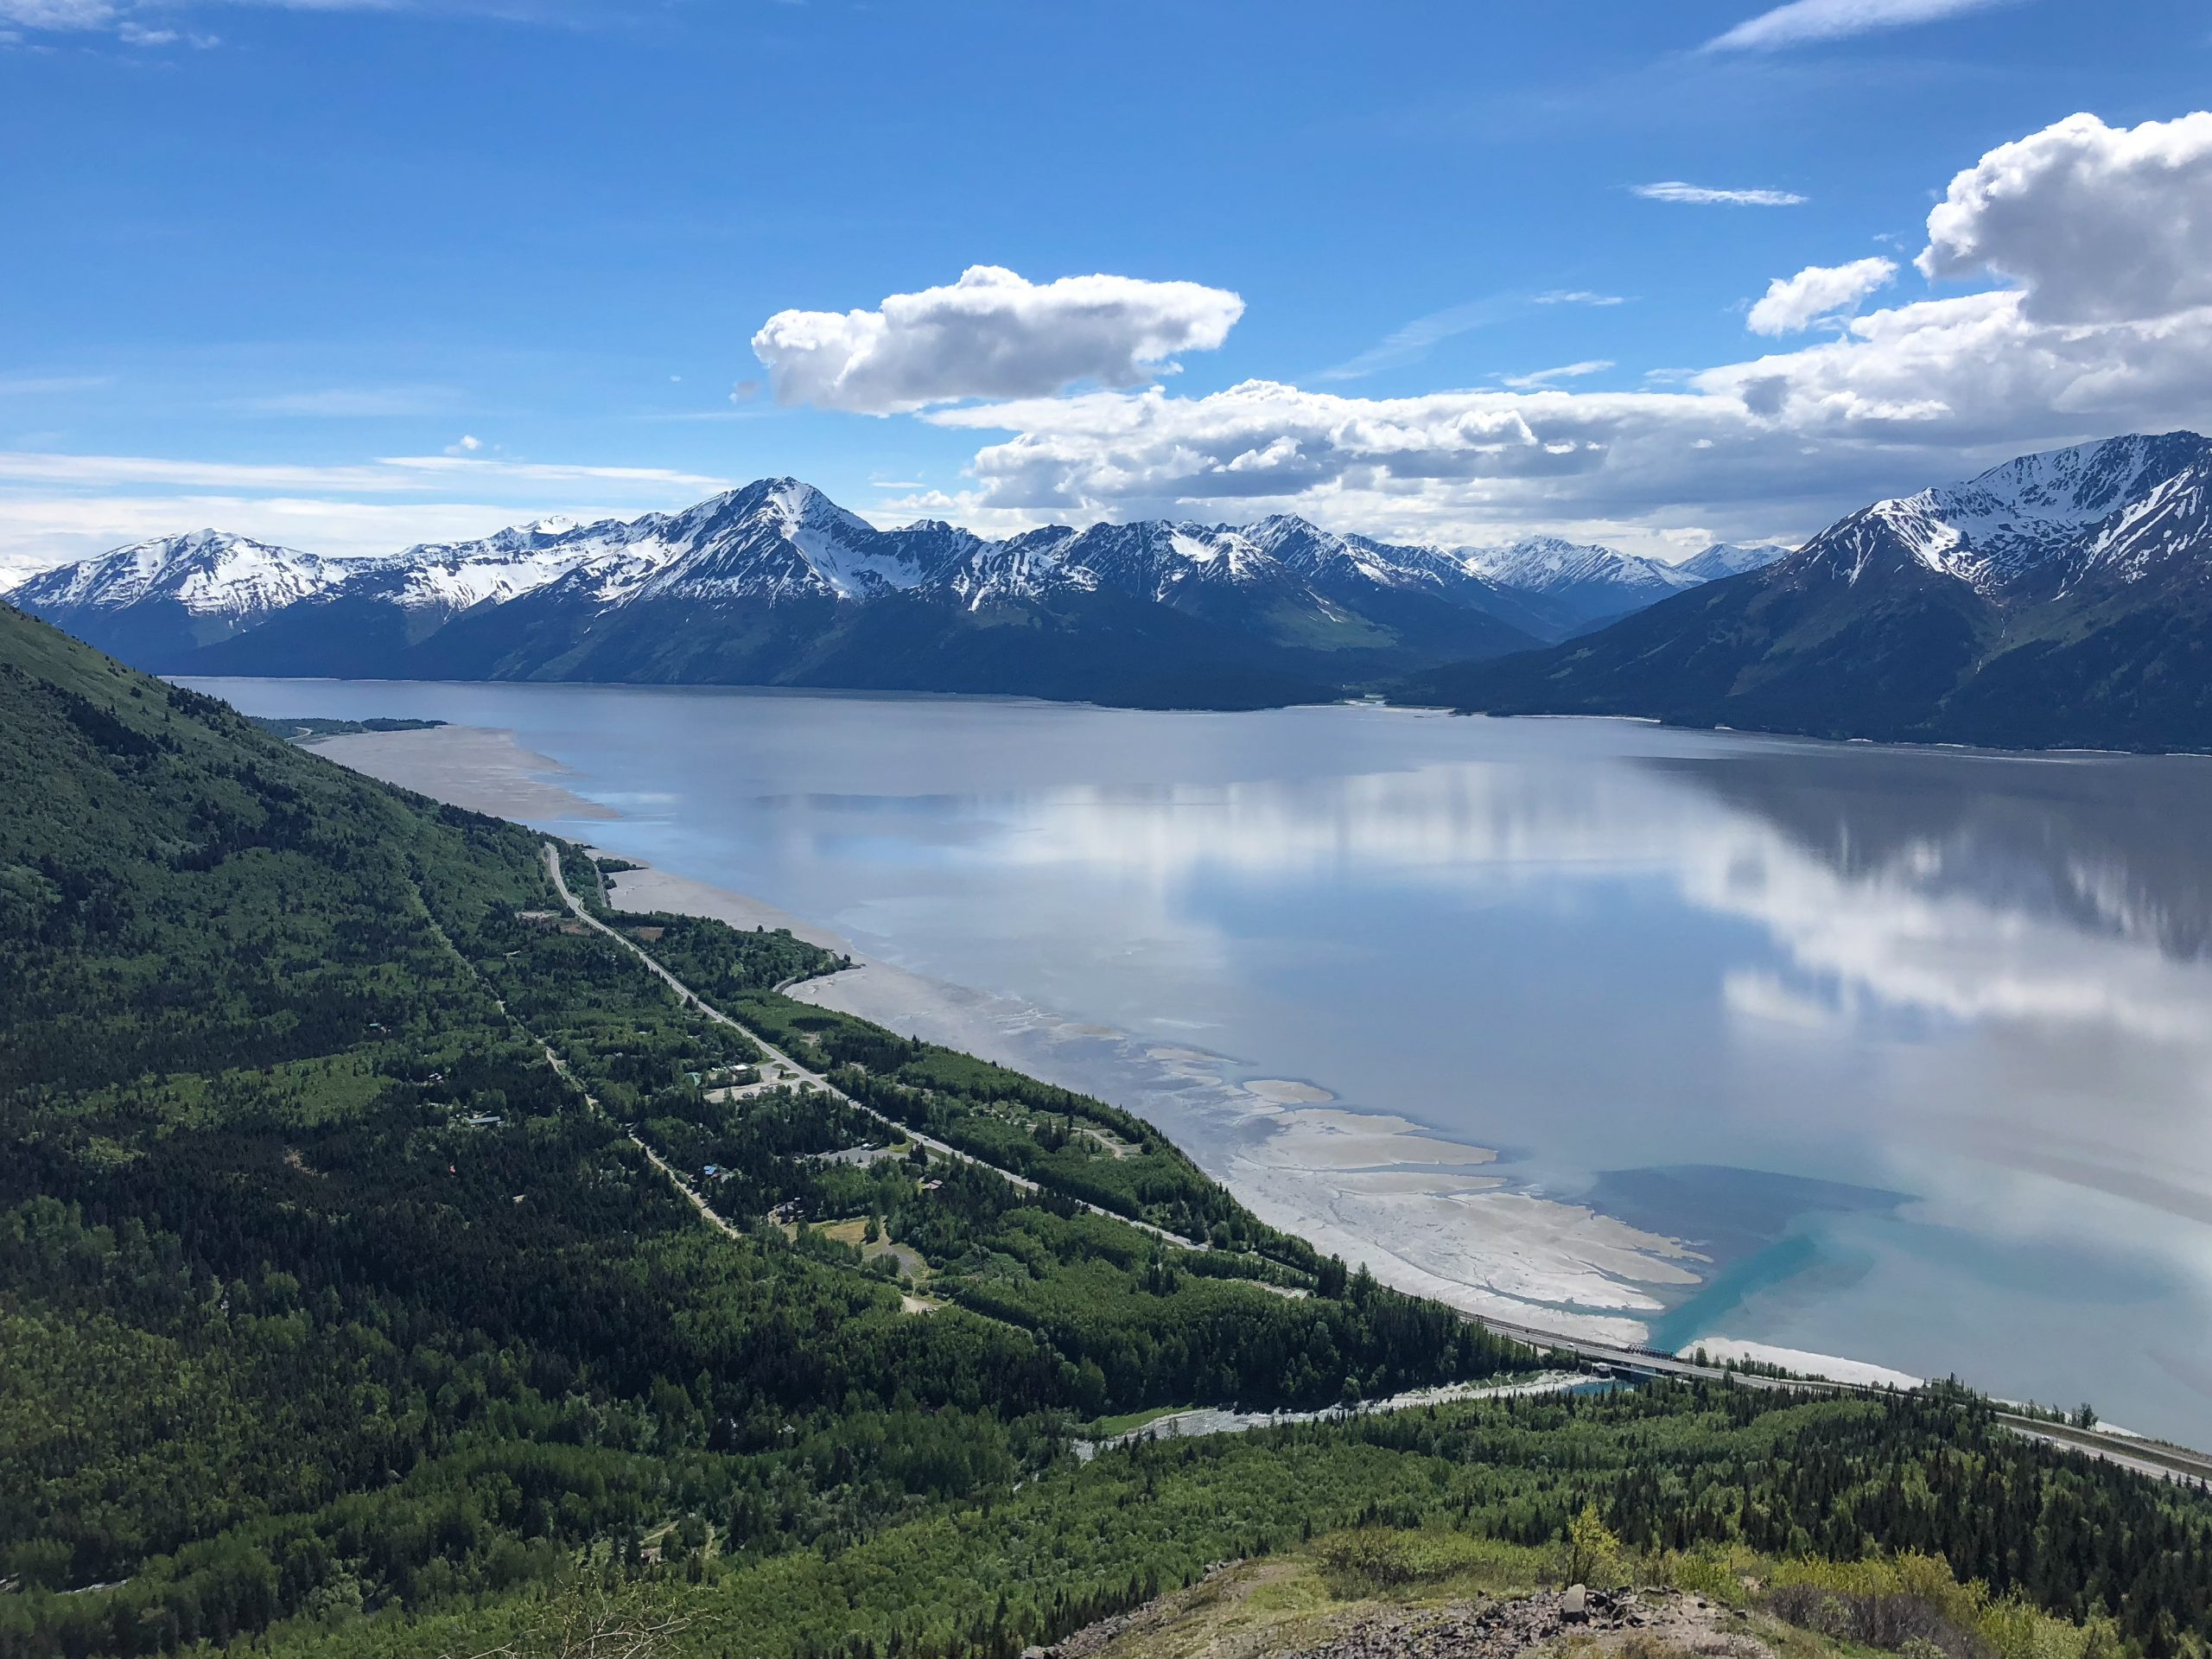 Turnagain Arm and Portage Valley